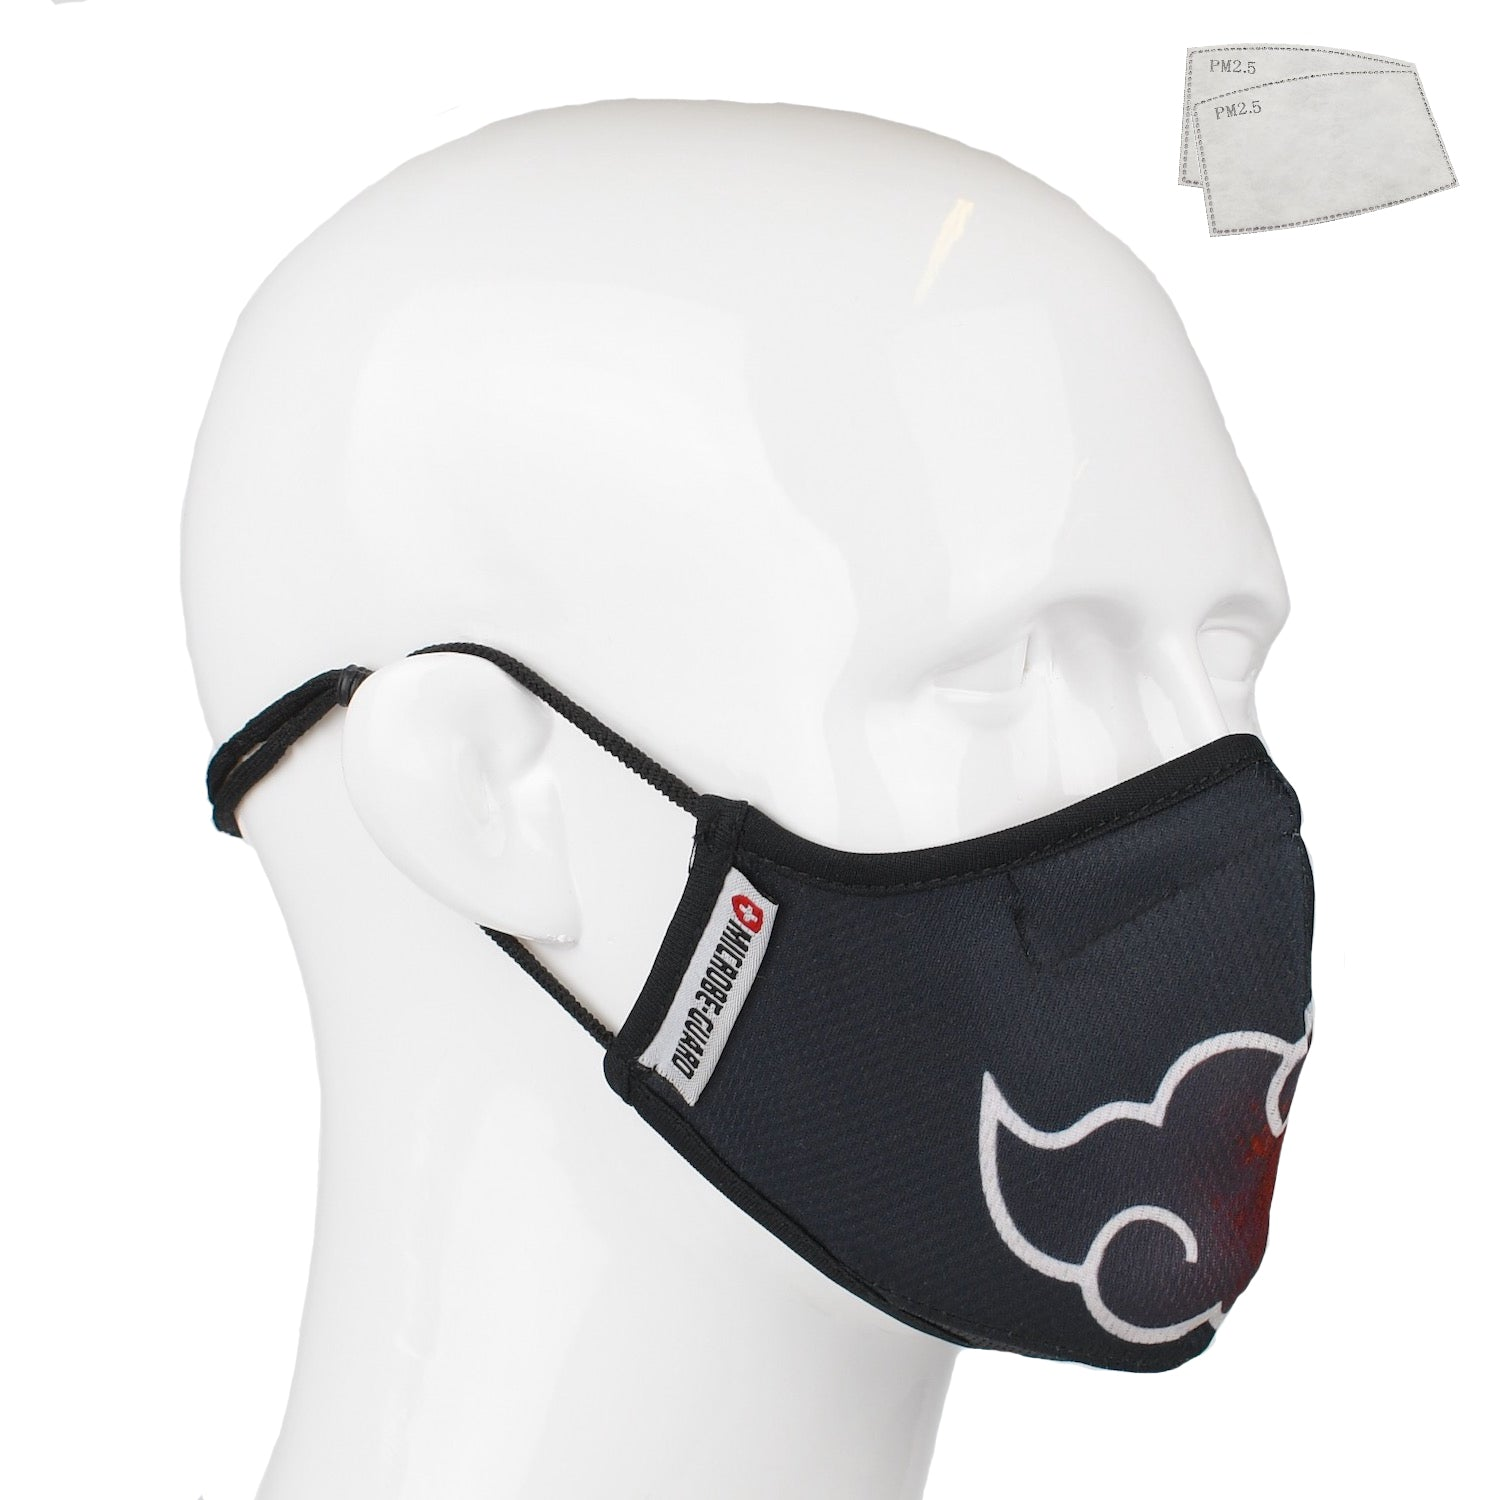 Aegis 2 Anime N. Performance Face Mask with Microbe-Guard